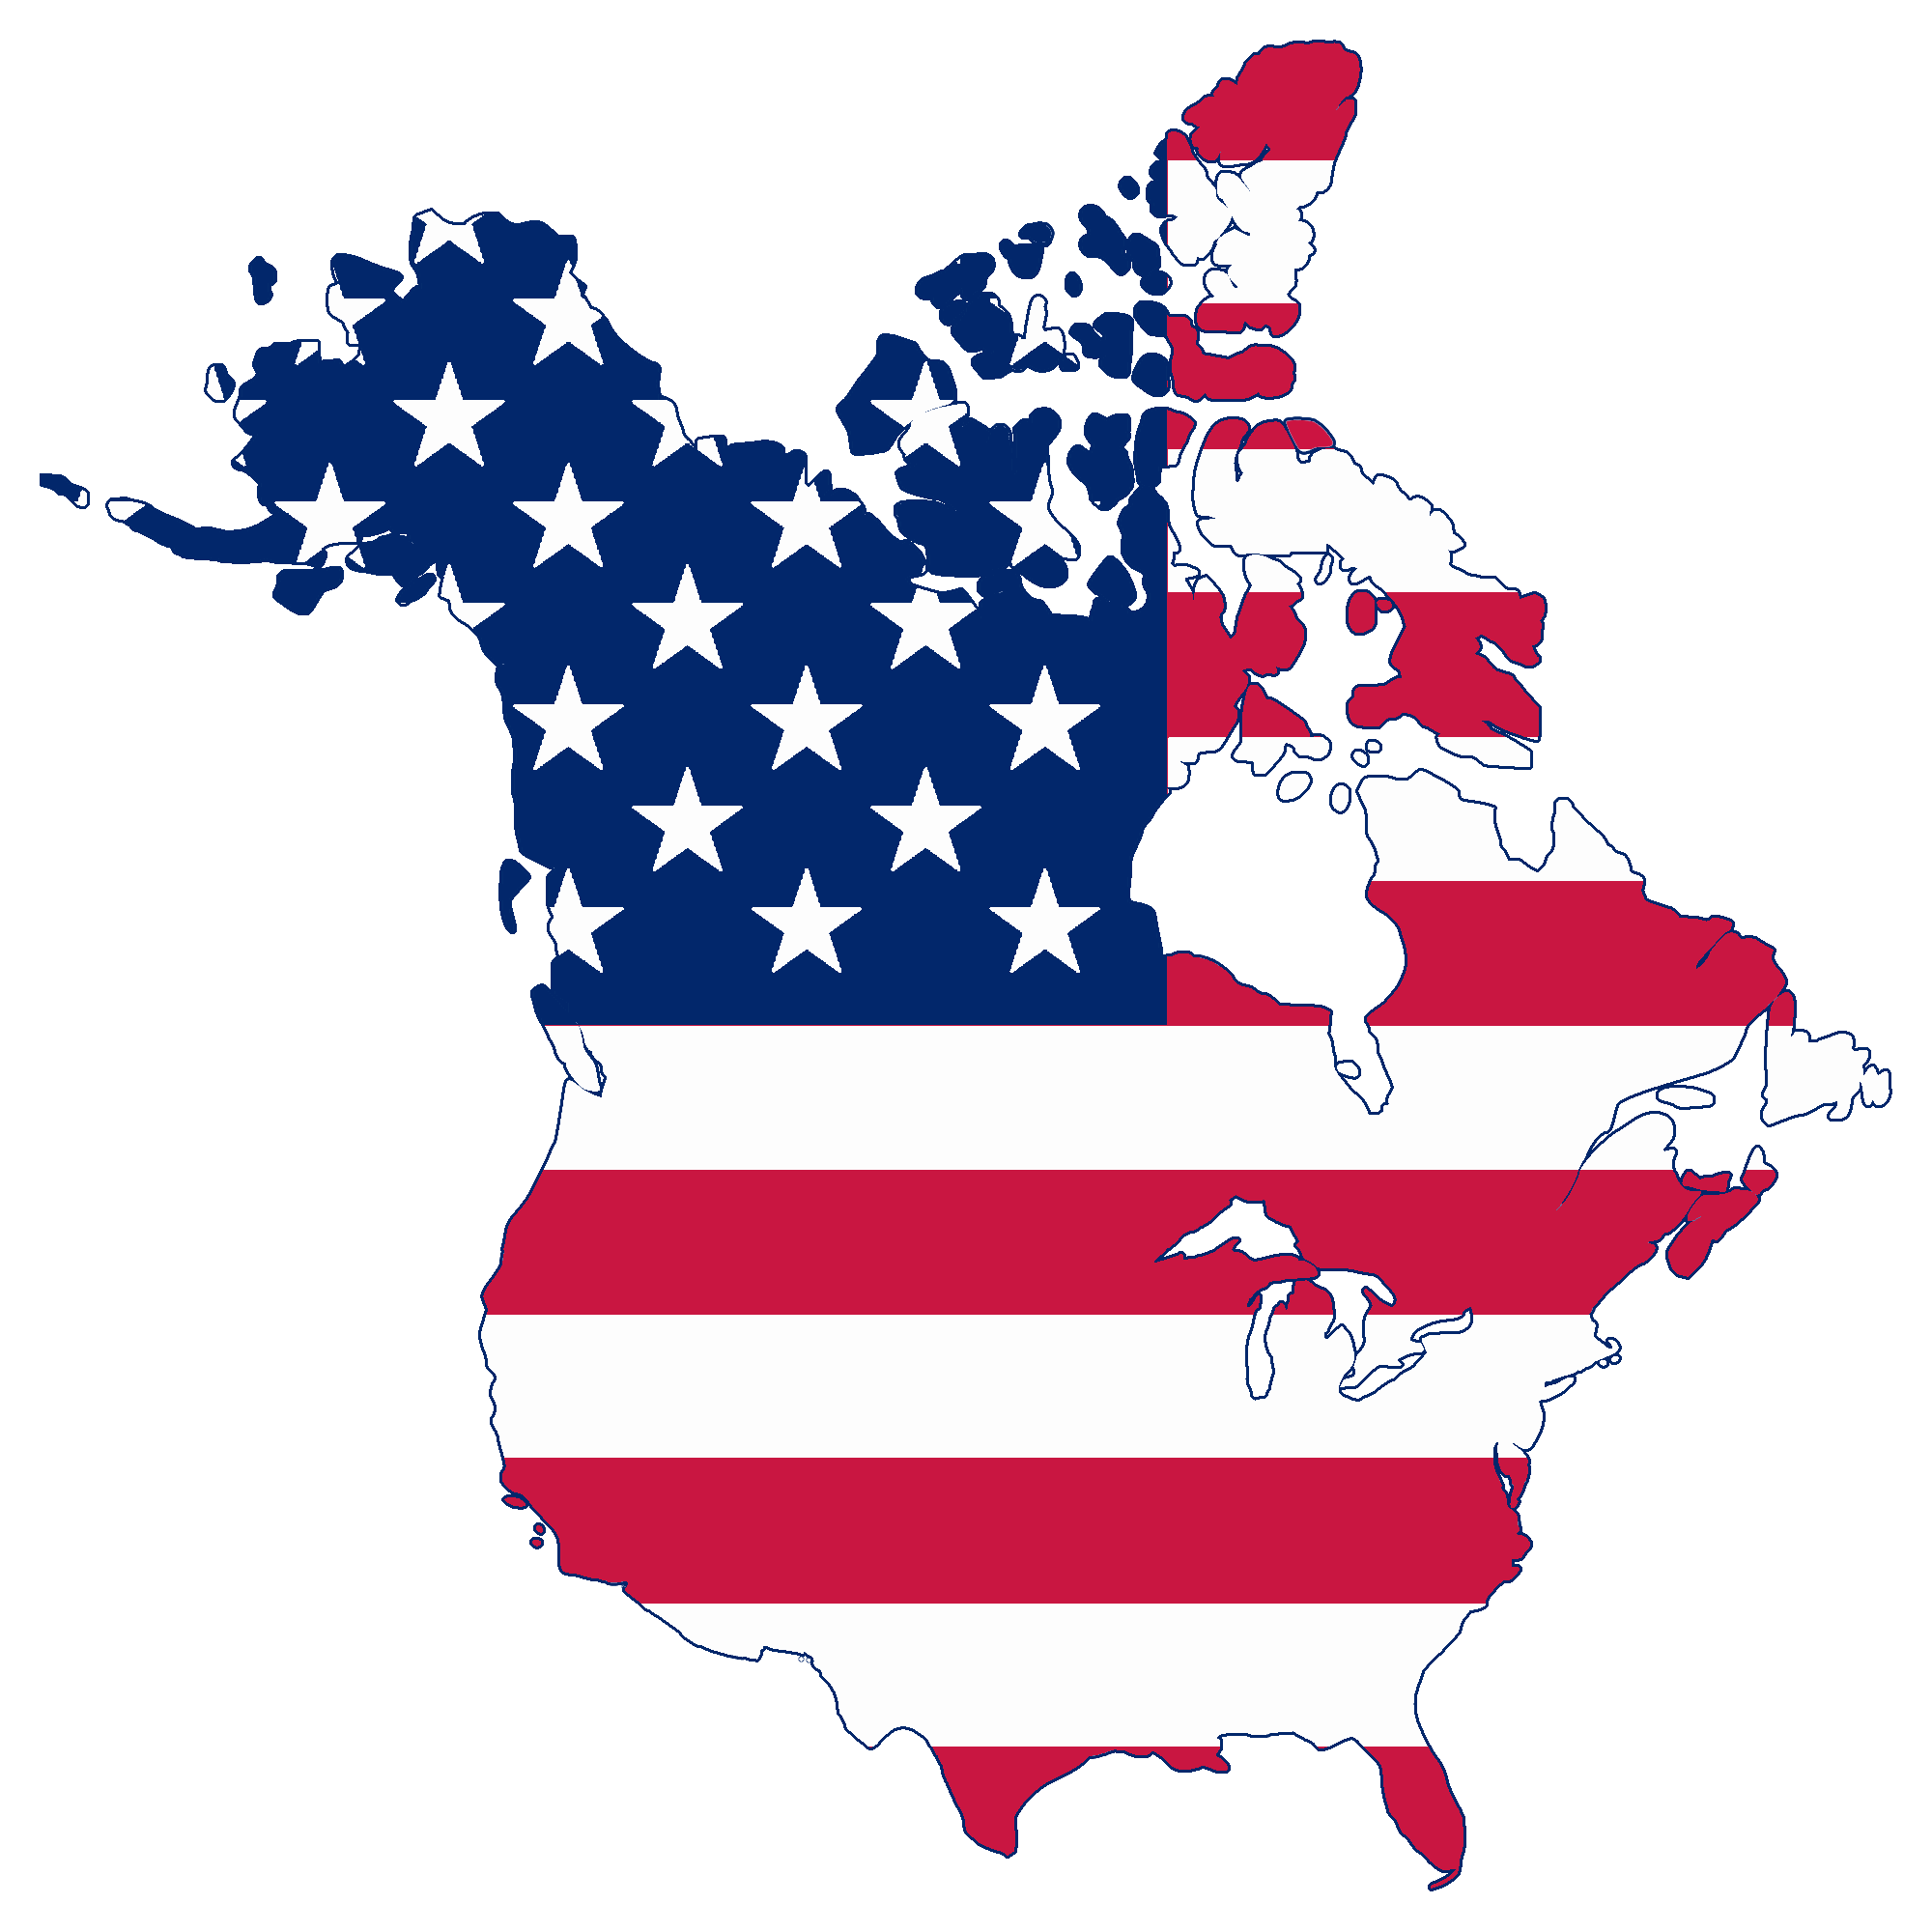 File:Flag map of Canada and United States (American Flag).png.